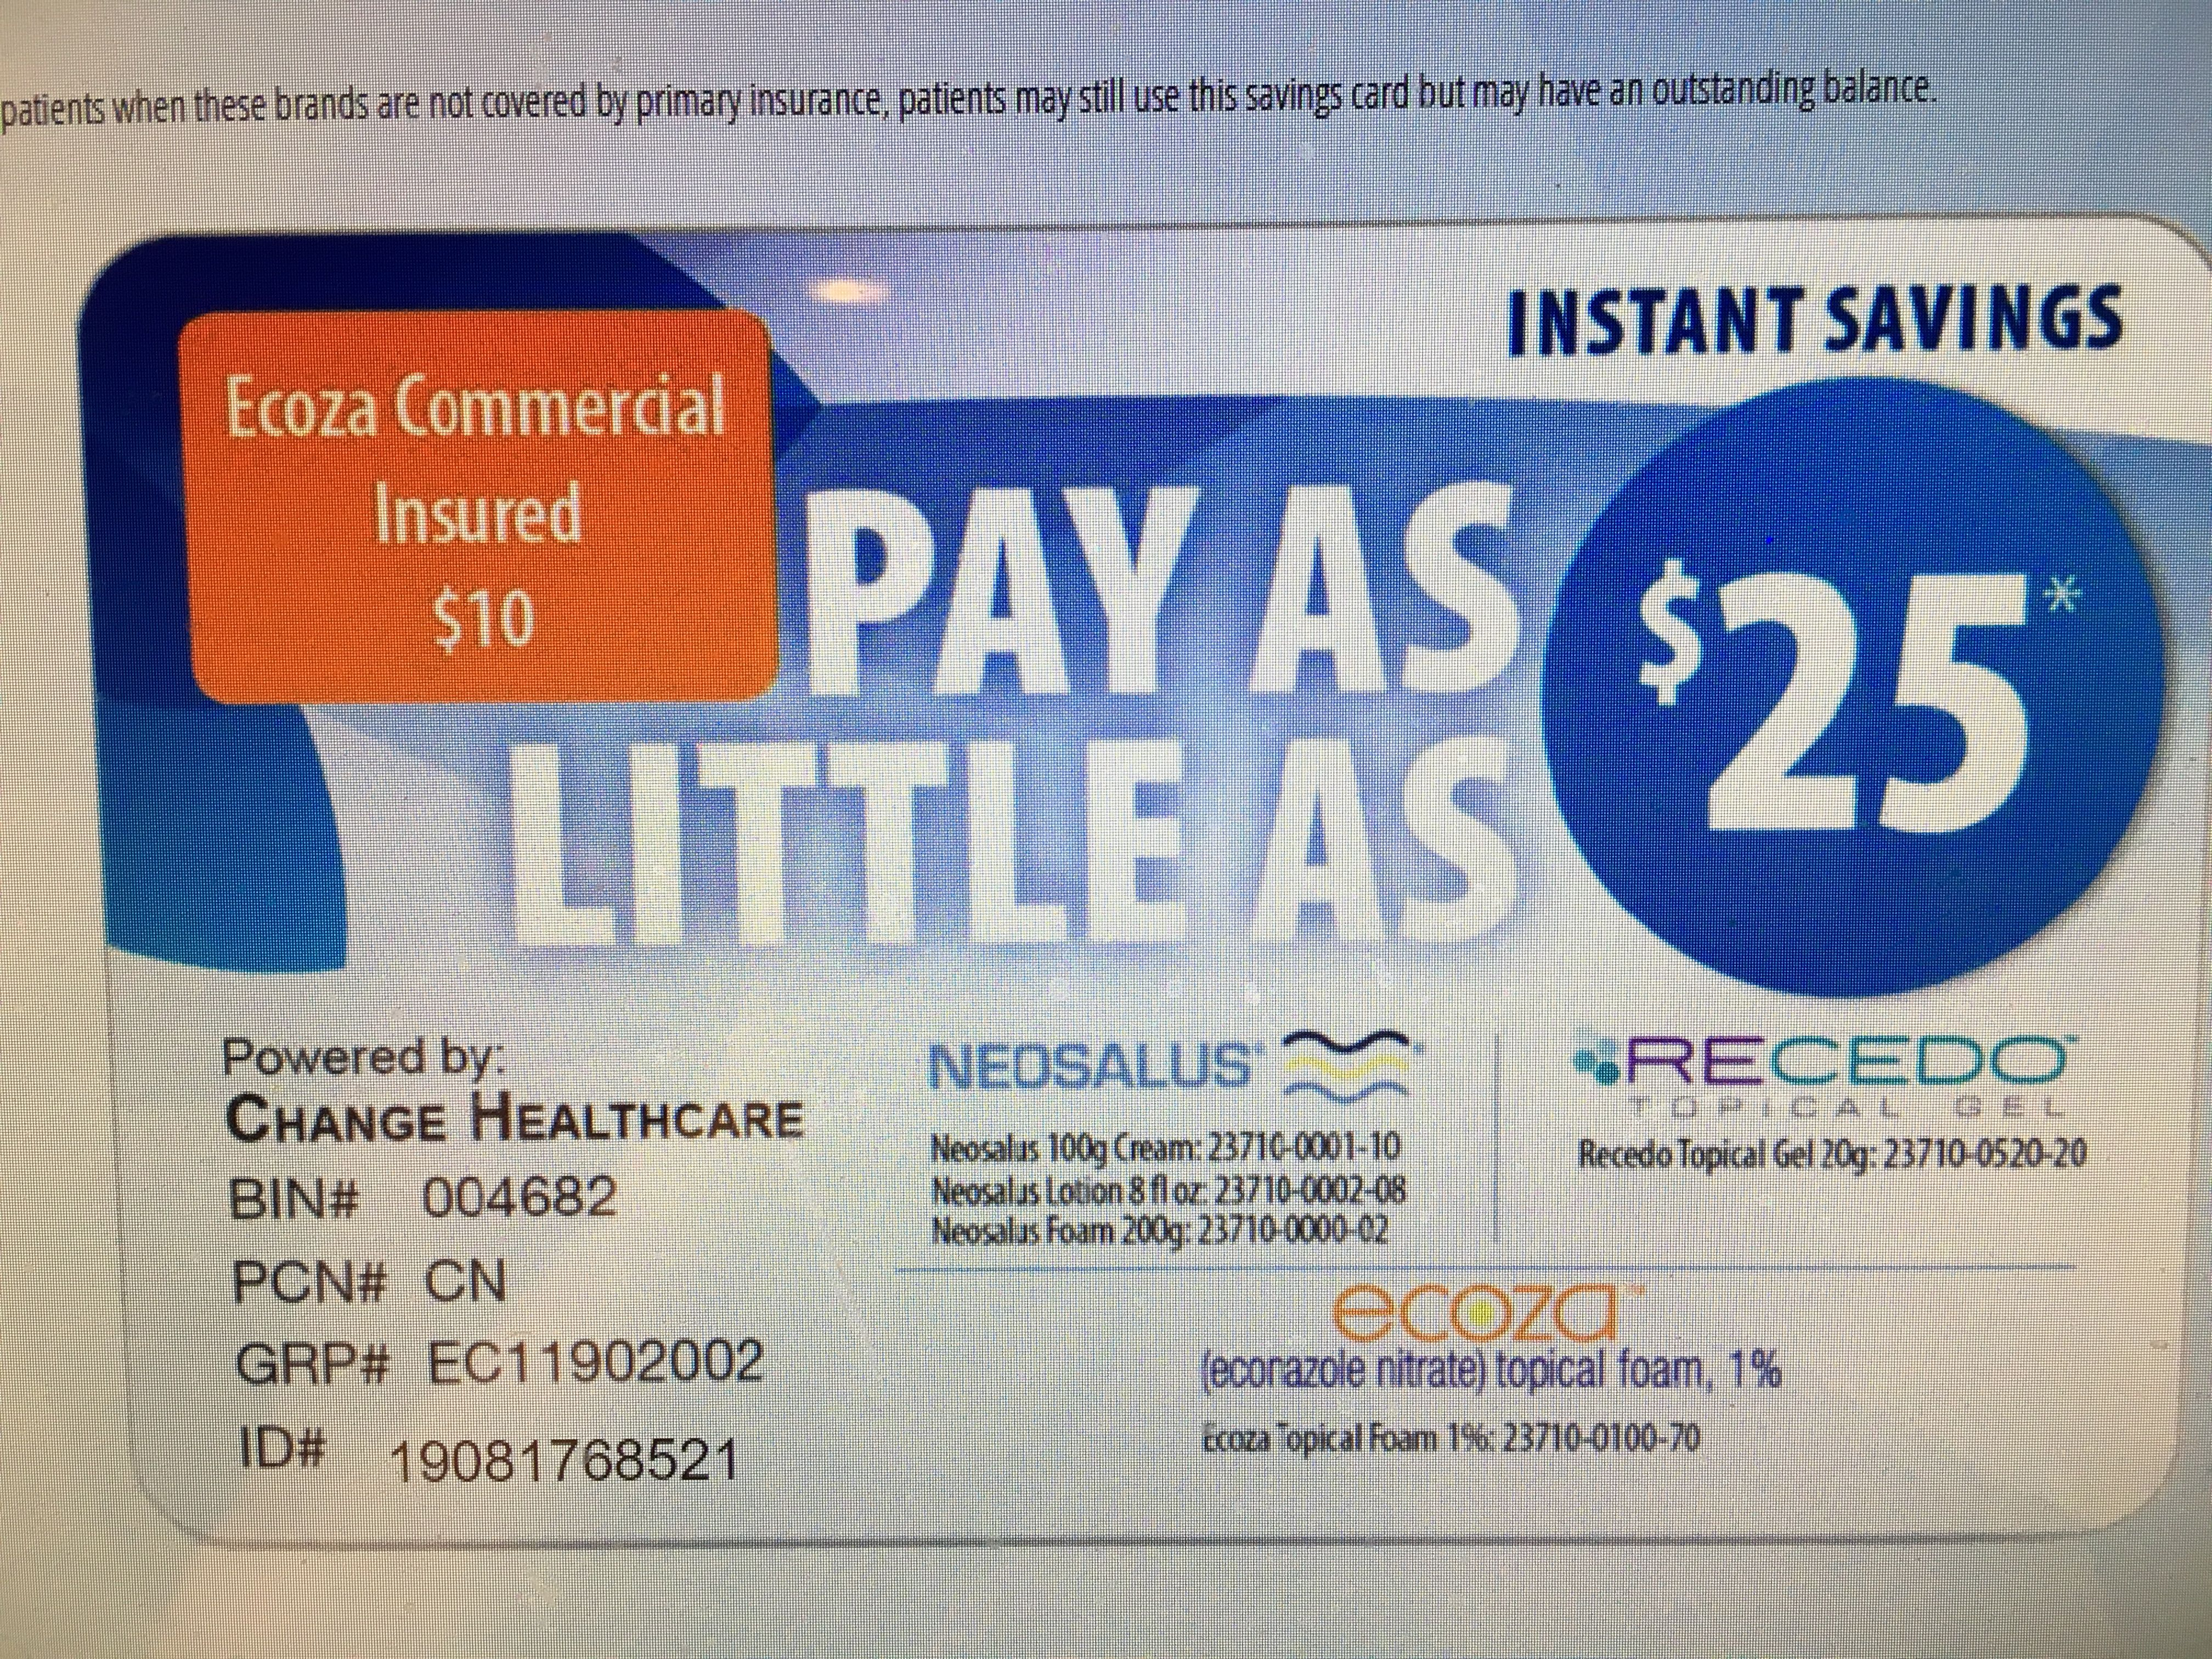 RECEDO GEL pay first 25 if insured or 150 if not